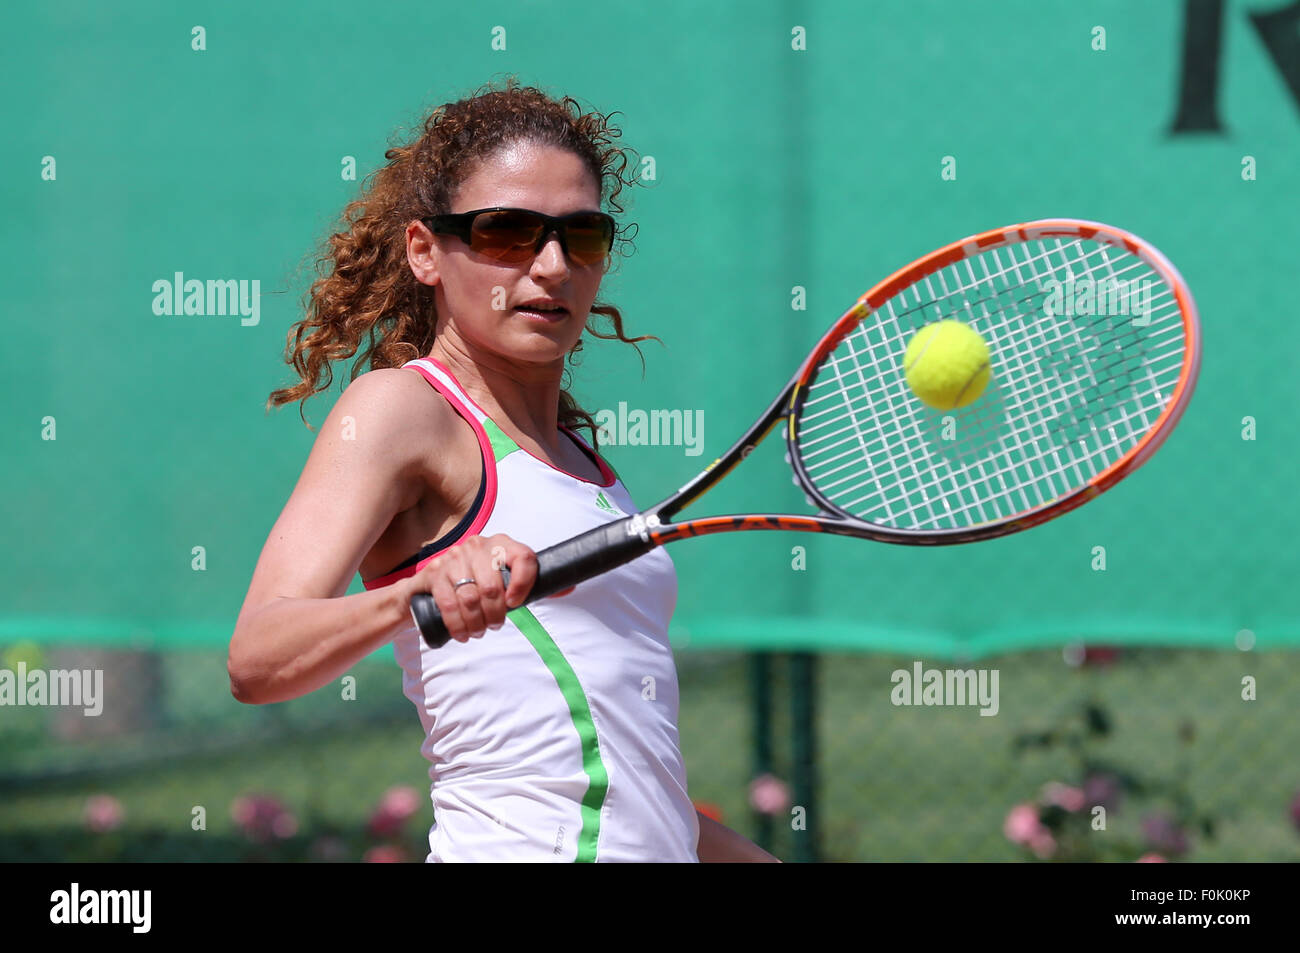 Young woman playing tennis. - Stock Image